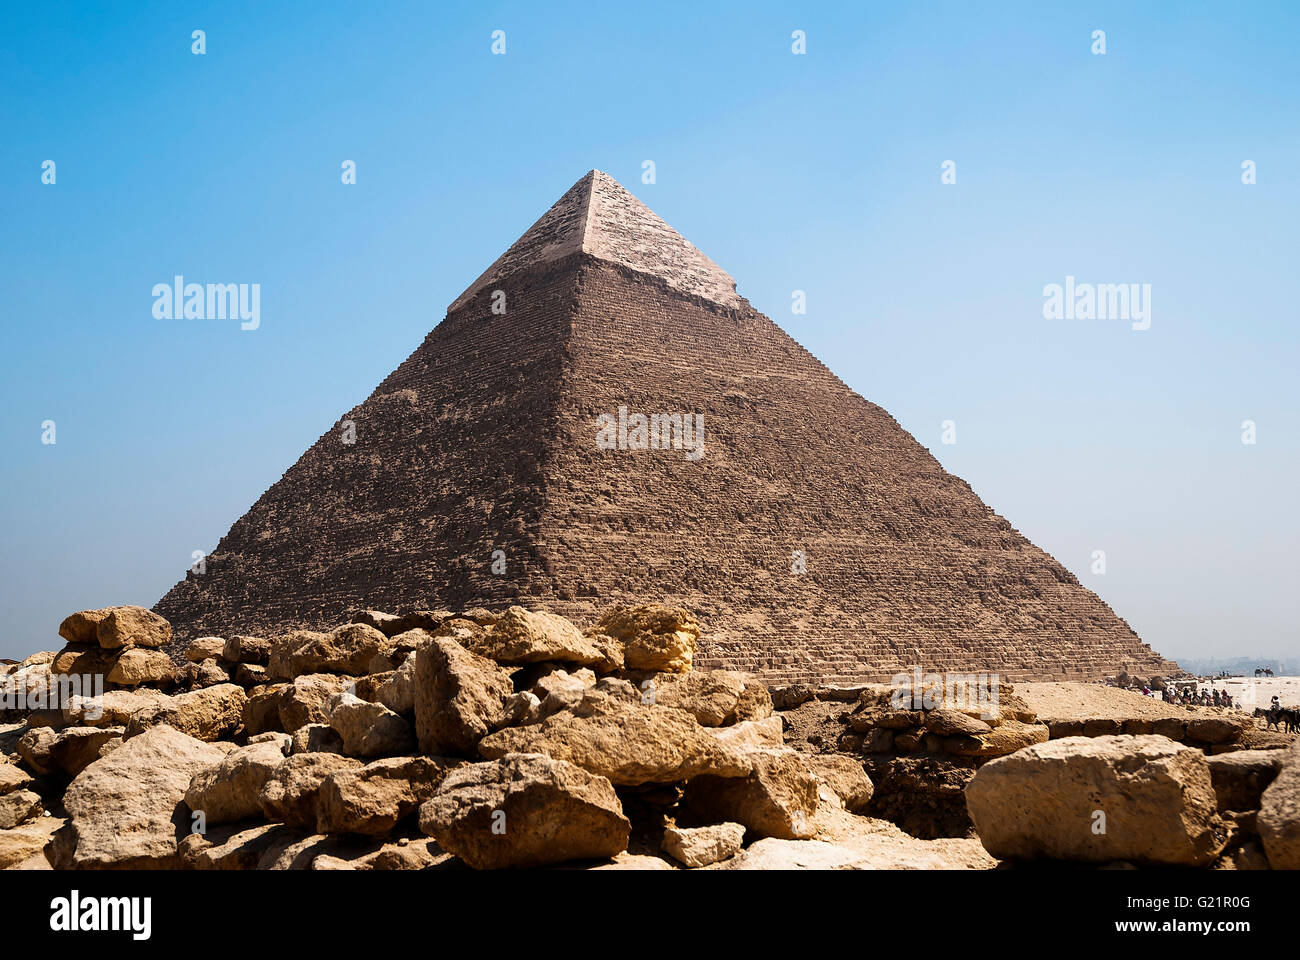 image of the great pyramids of Giza in Egypt - Stock Image